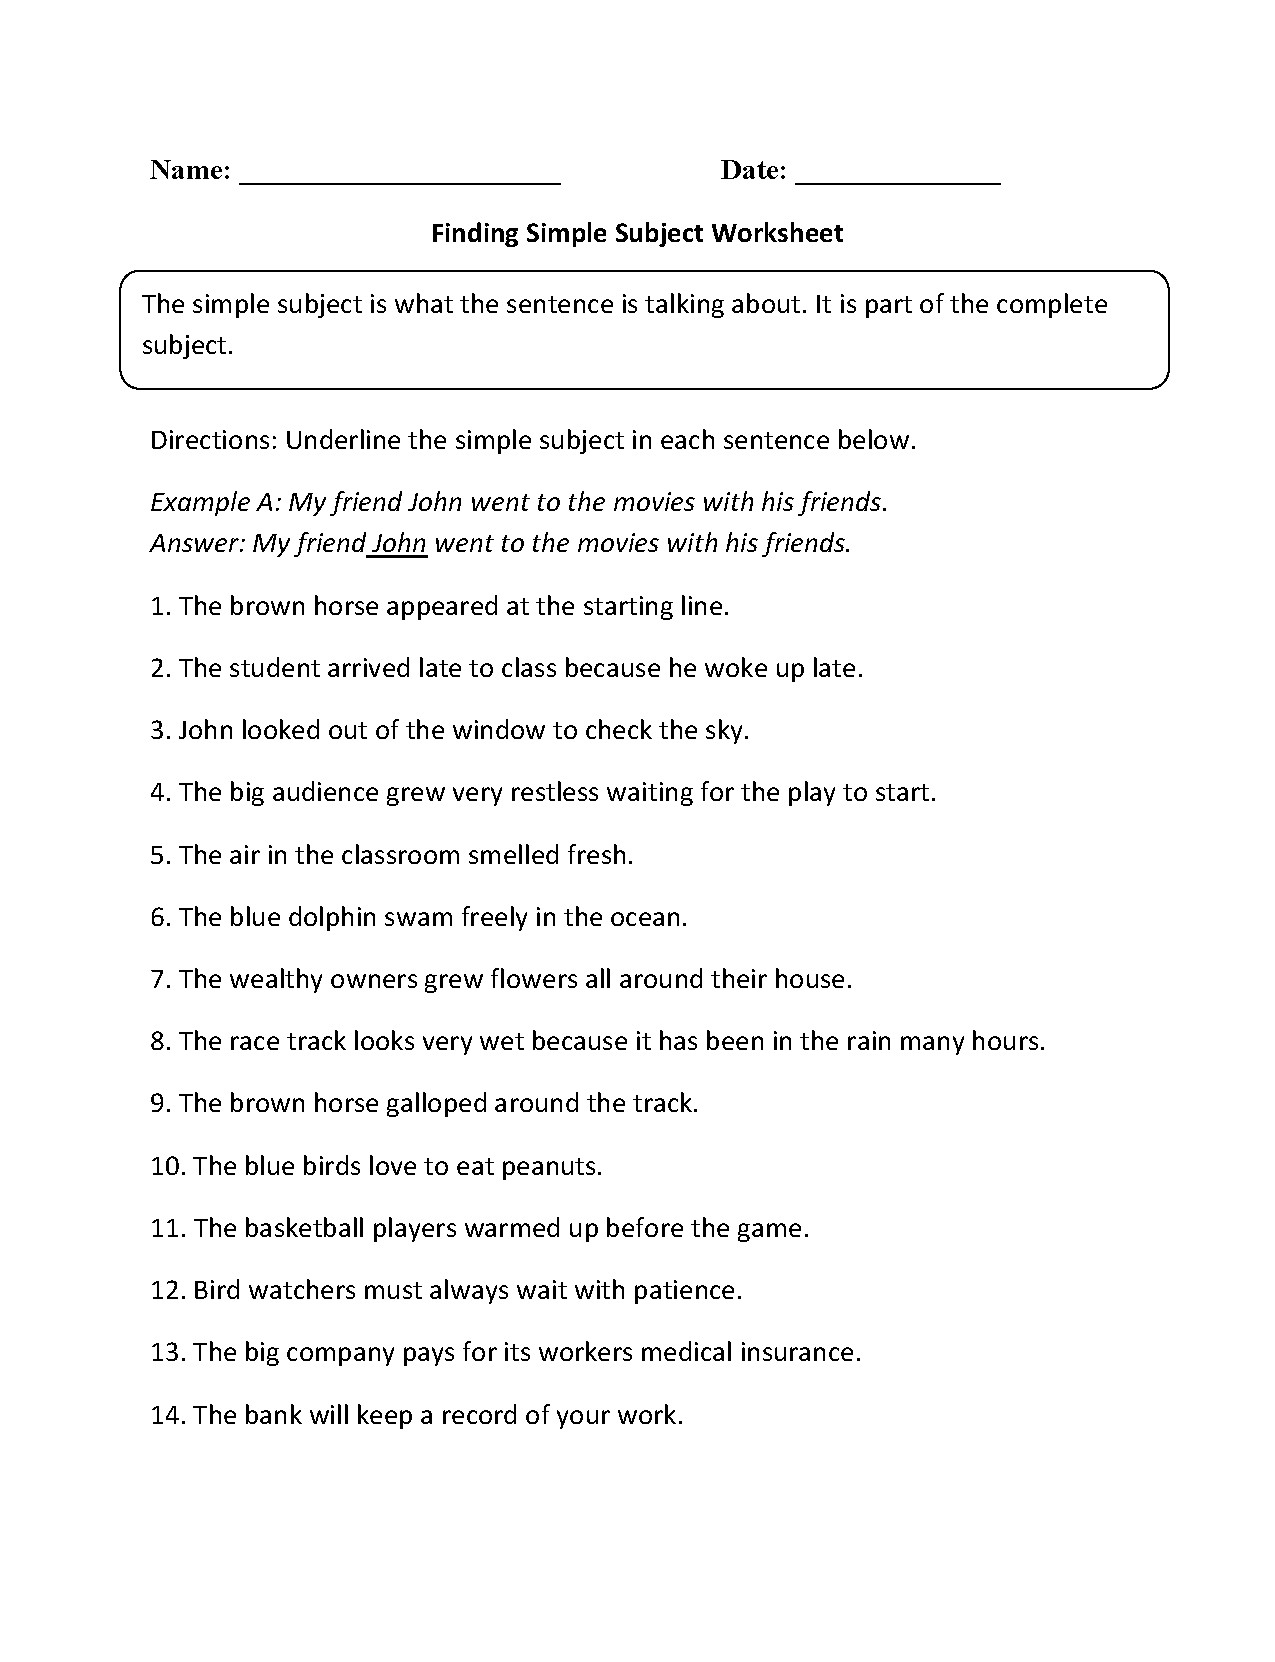 Accompanies Soil Conservation Student Worksheet With Soil